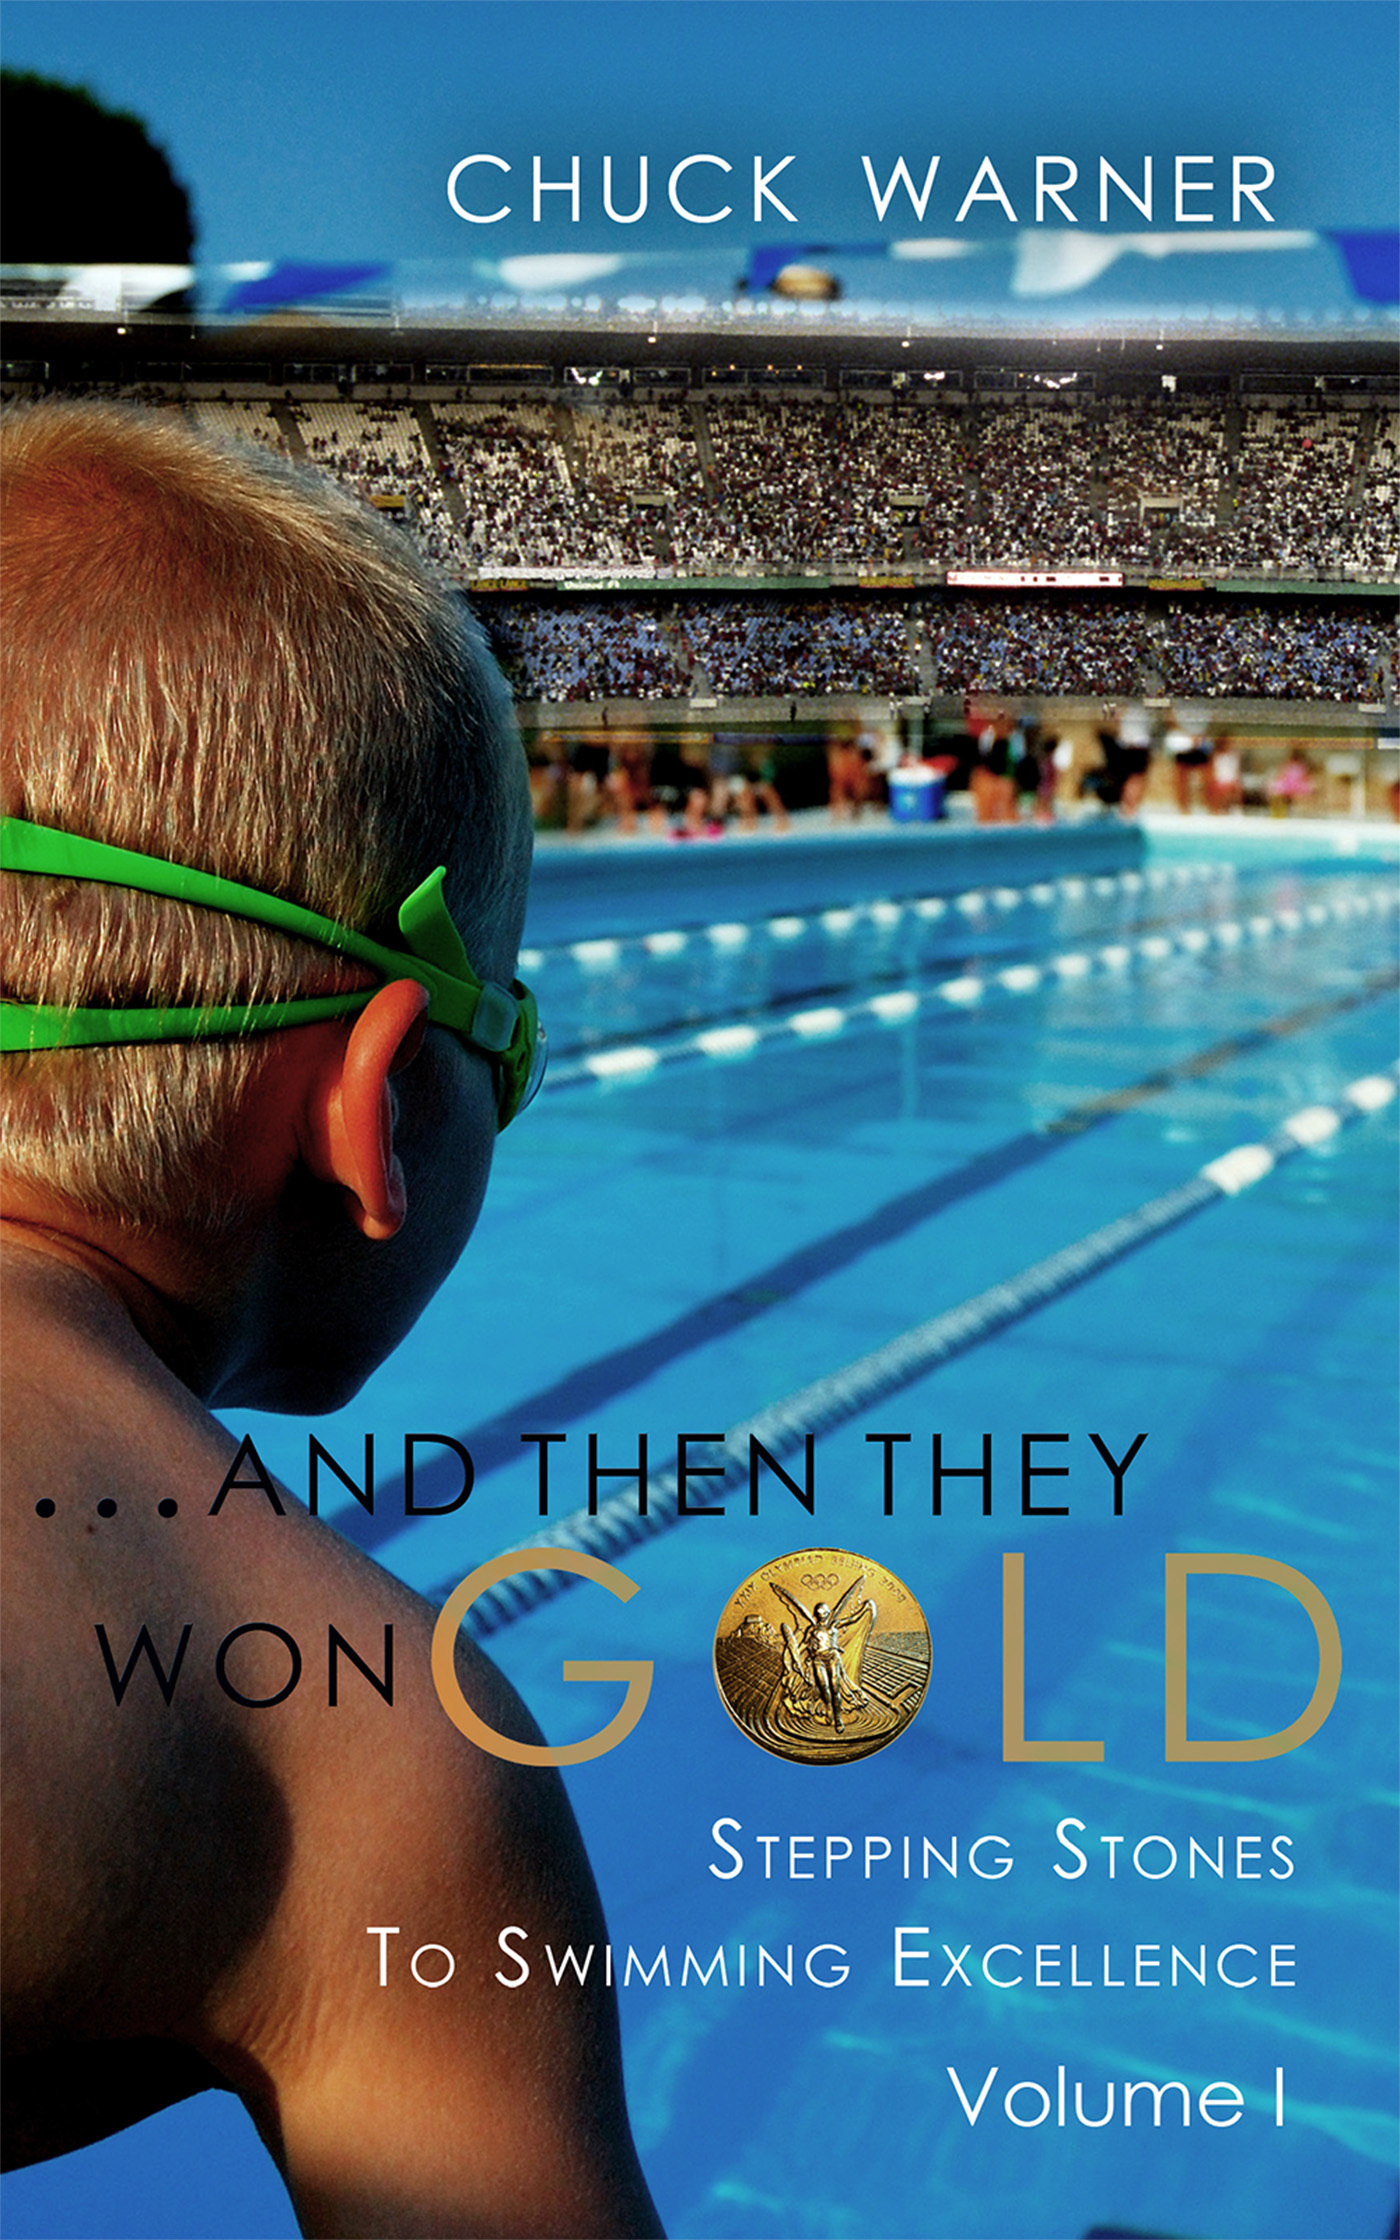 ...And Then They Won Gold: Stepping Stones to Swimming Excellence - Volume 1